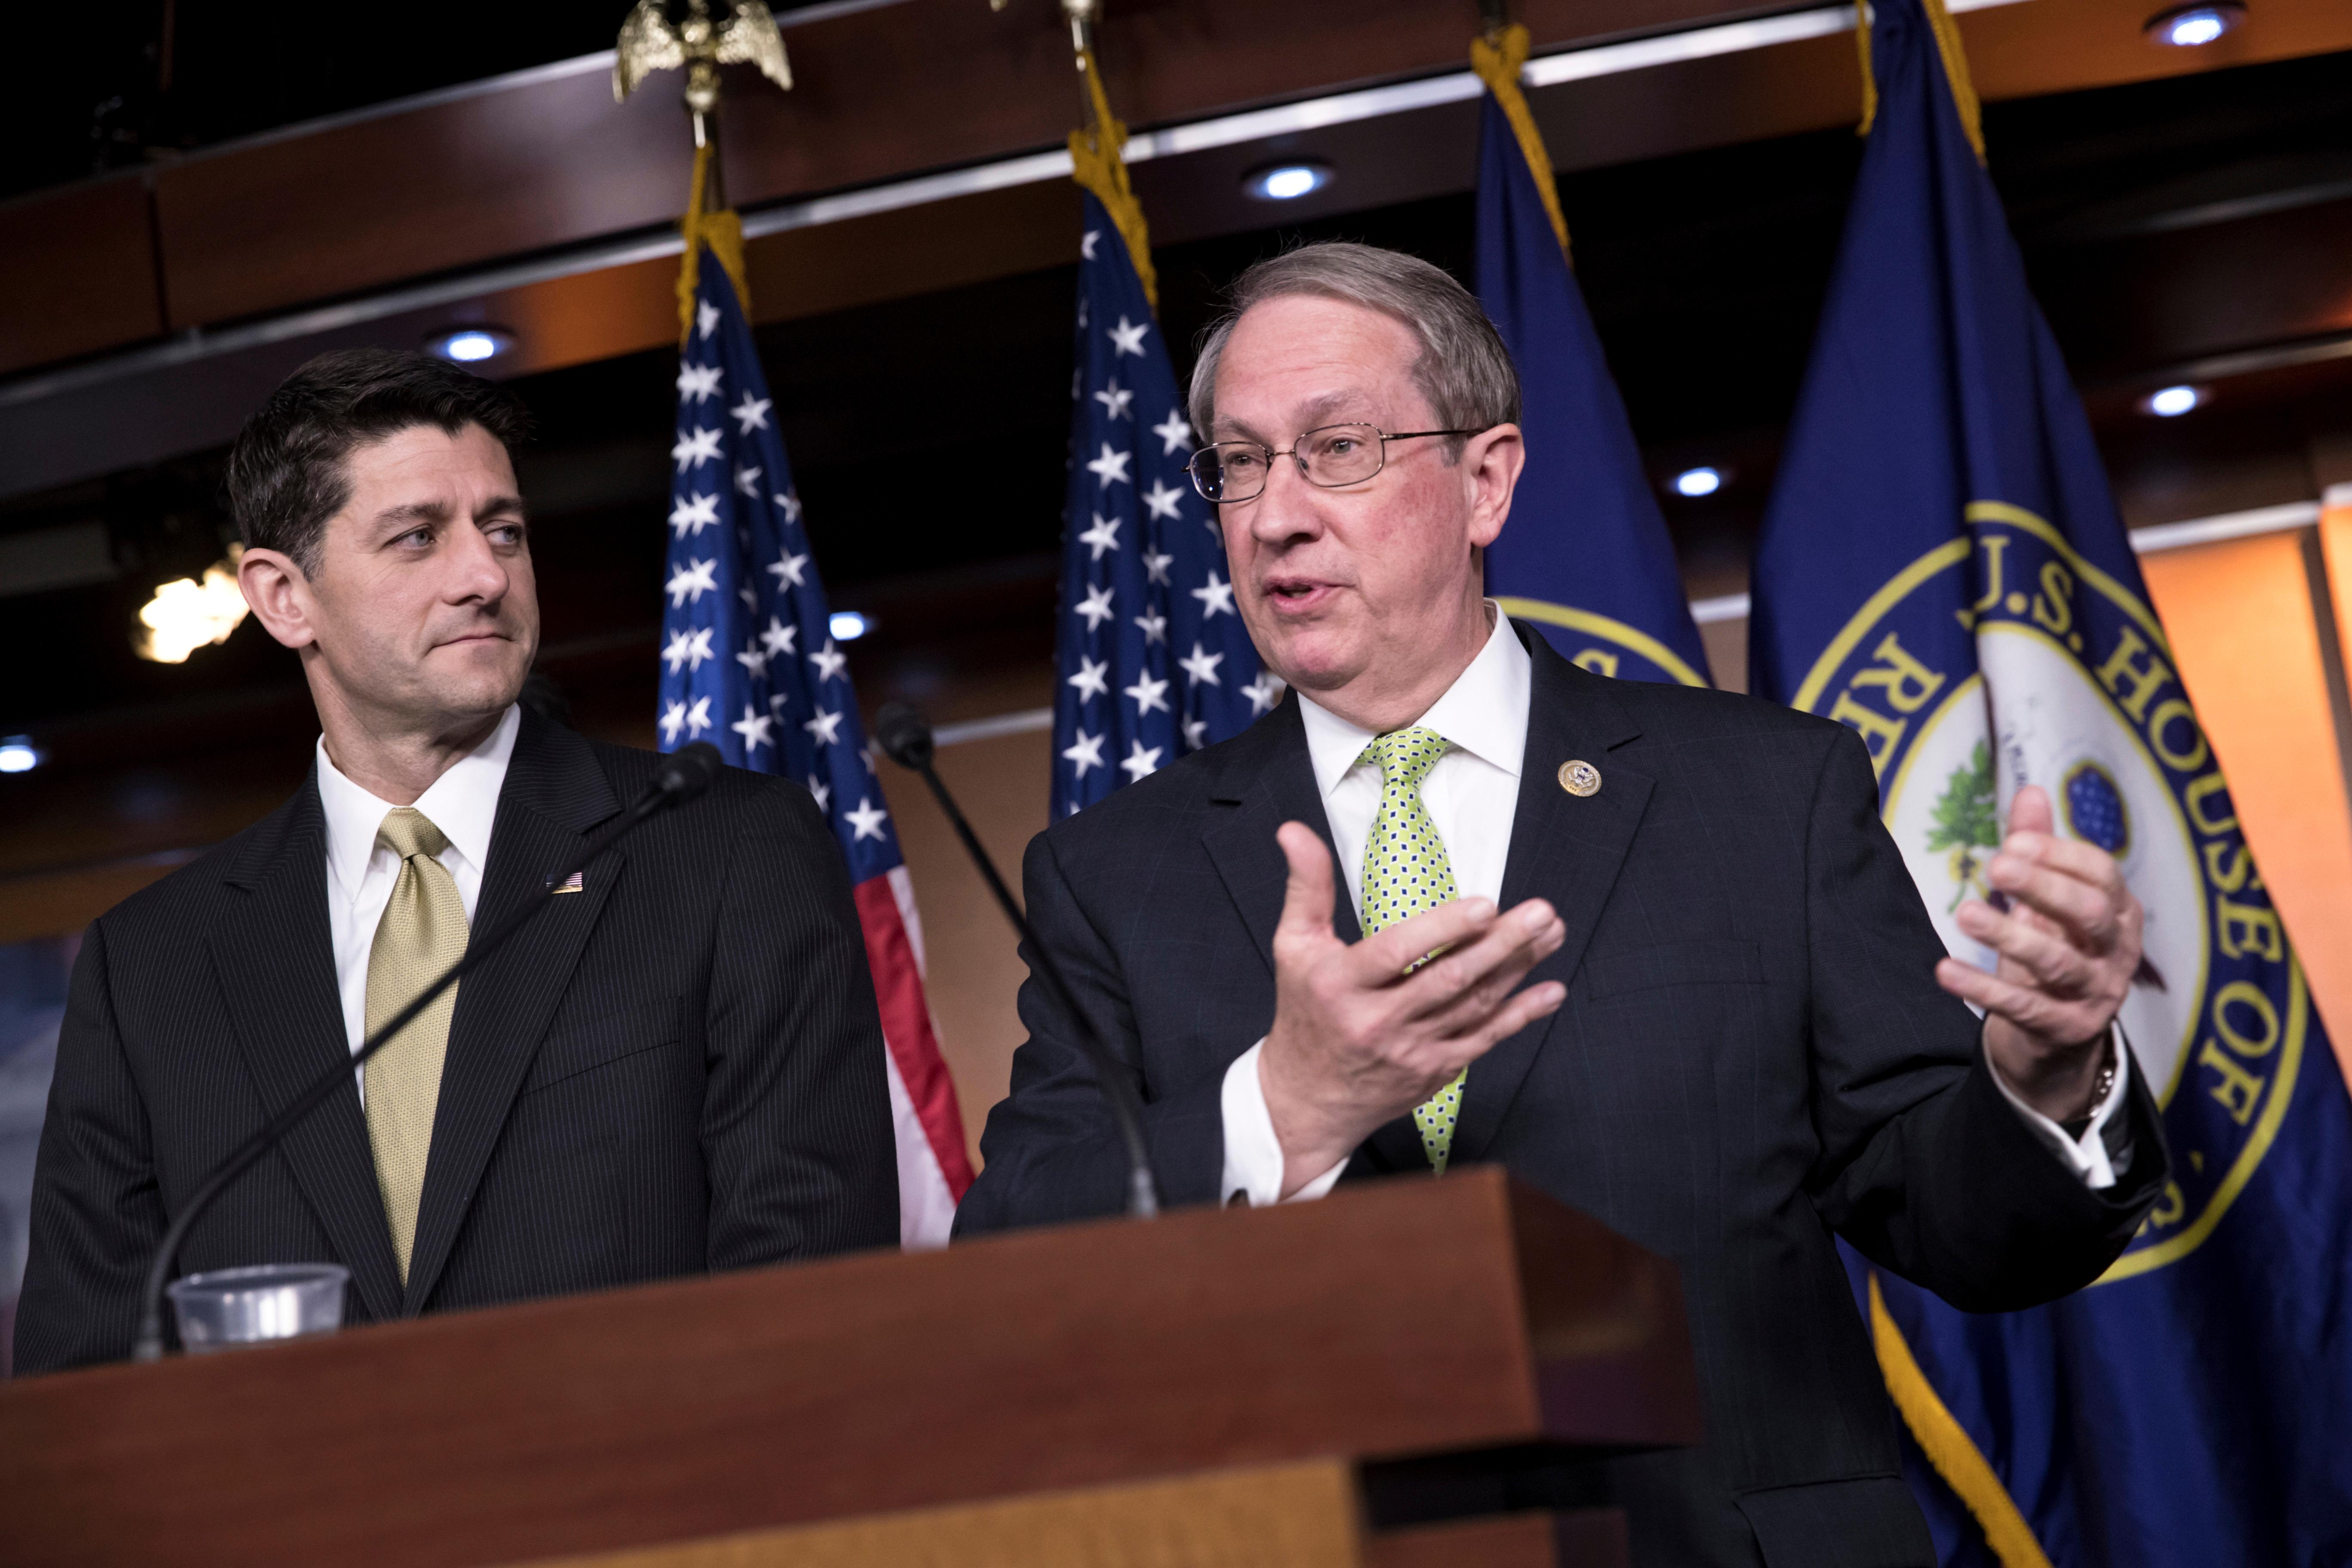 "House Speaker Paul Ryan, R-Wis., left, is joined by House Judiciary Committee Chairman Bob Goodlatte, R-Va., right, as the Republican-led House pushes ahead on legislation to crack down on illegal immigration, during a news conference at the Capitol in Washington, Thursday, June 29, 2017. One bill would strip federal funds from ""sanctuary"" cities that shield residents from federal immigration authorities, while a separate bill would stiffen punishments on people who re-enter the U.S. Illegally. (AP Photo/J. Scott Applewhite)"